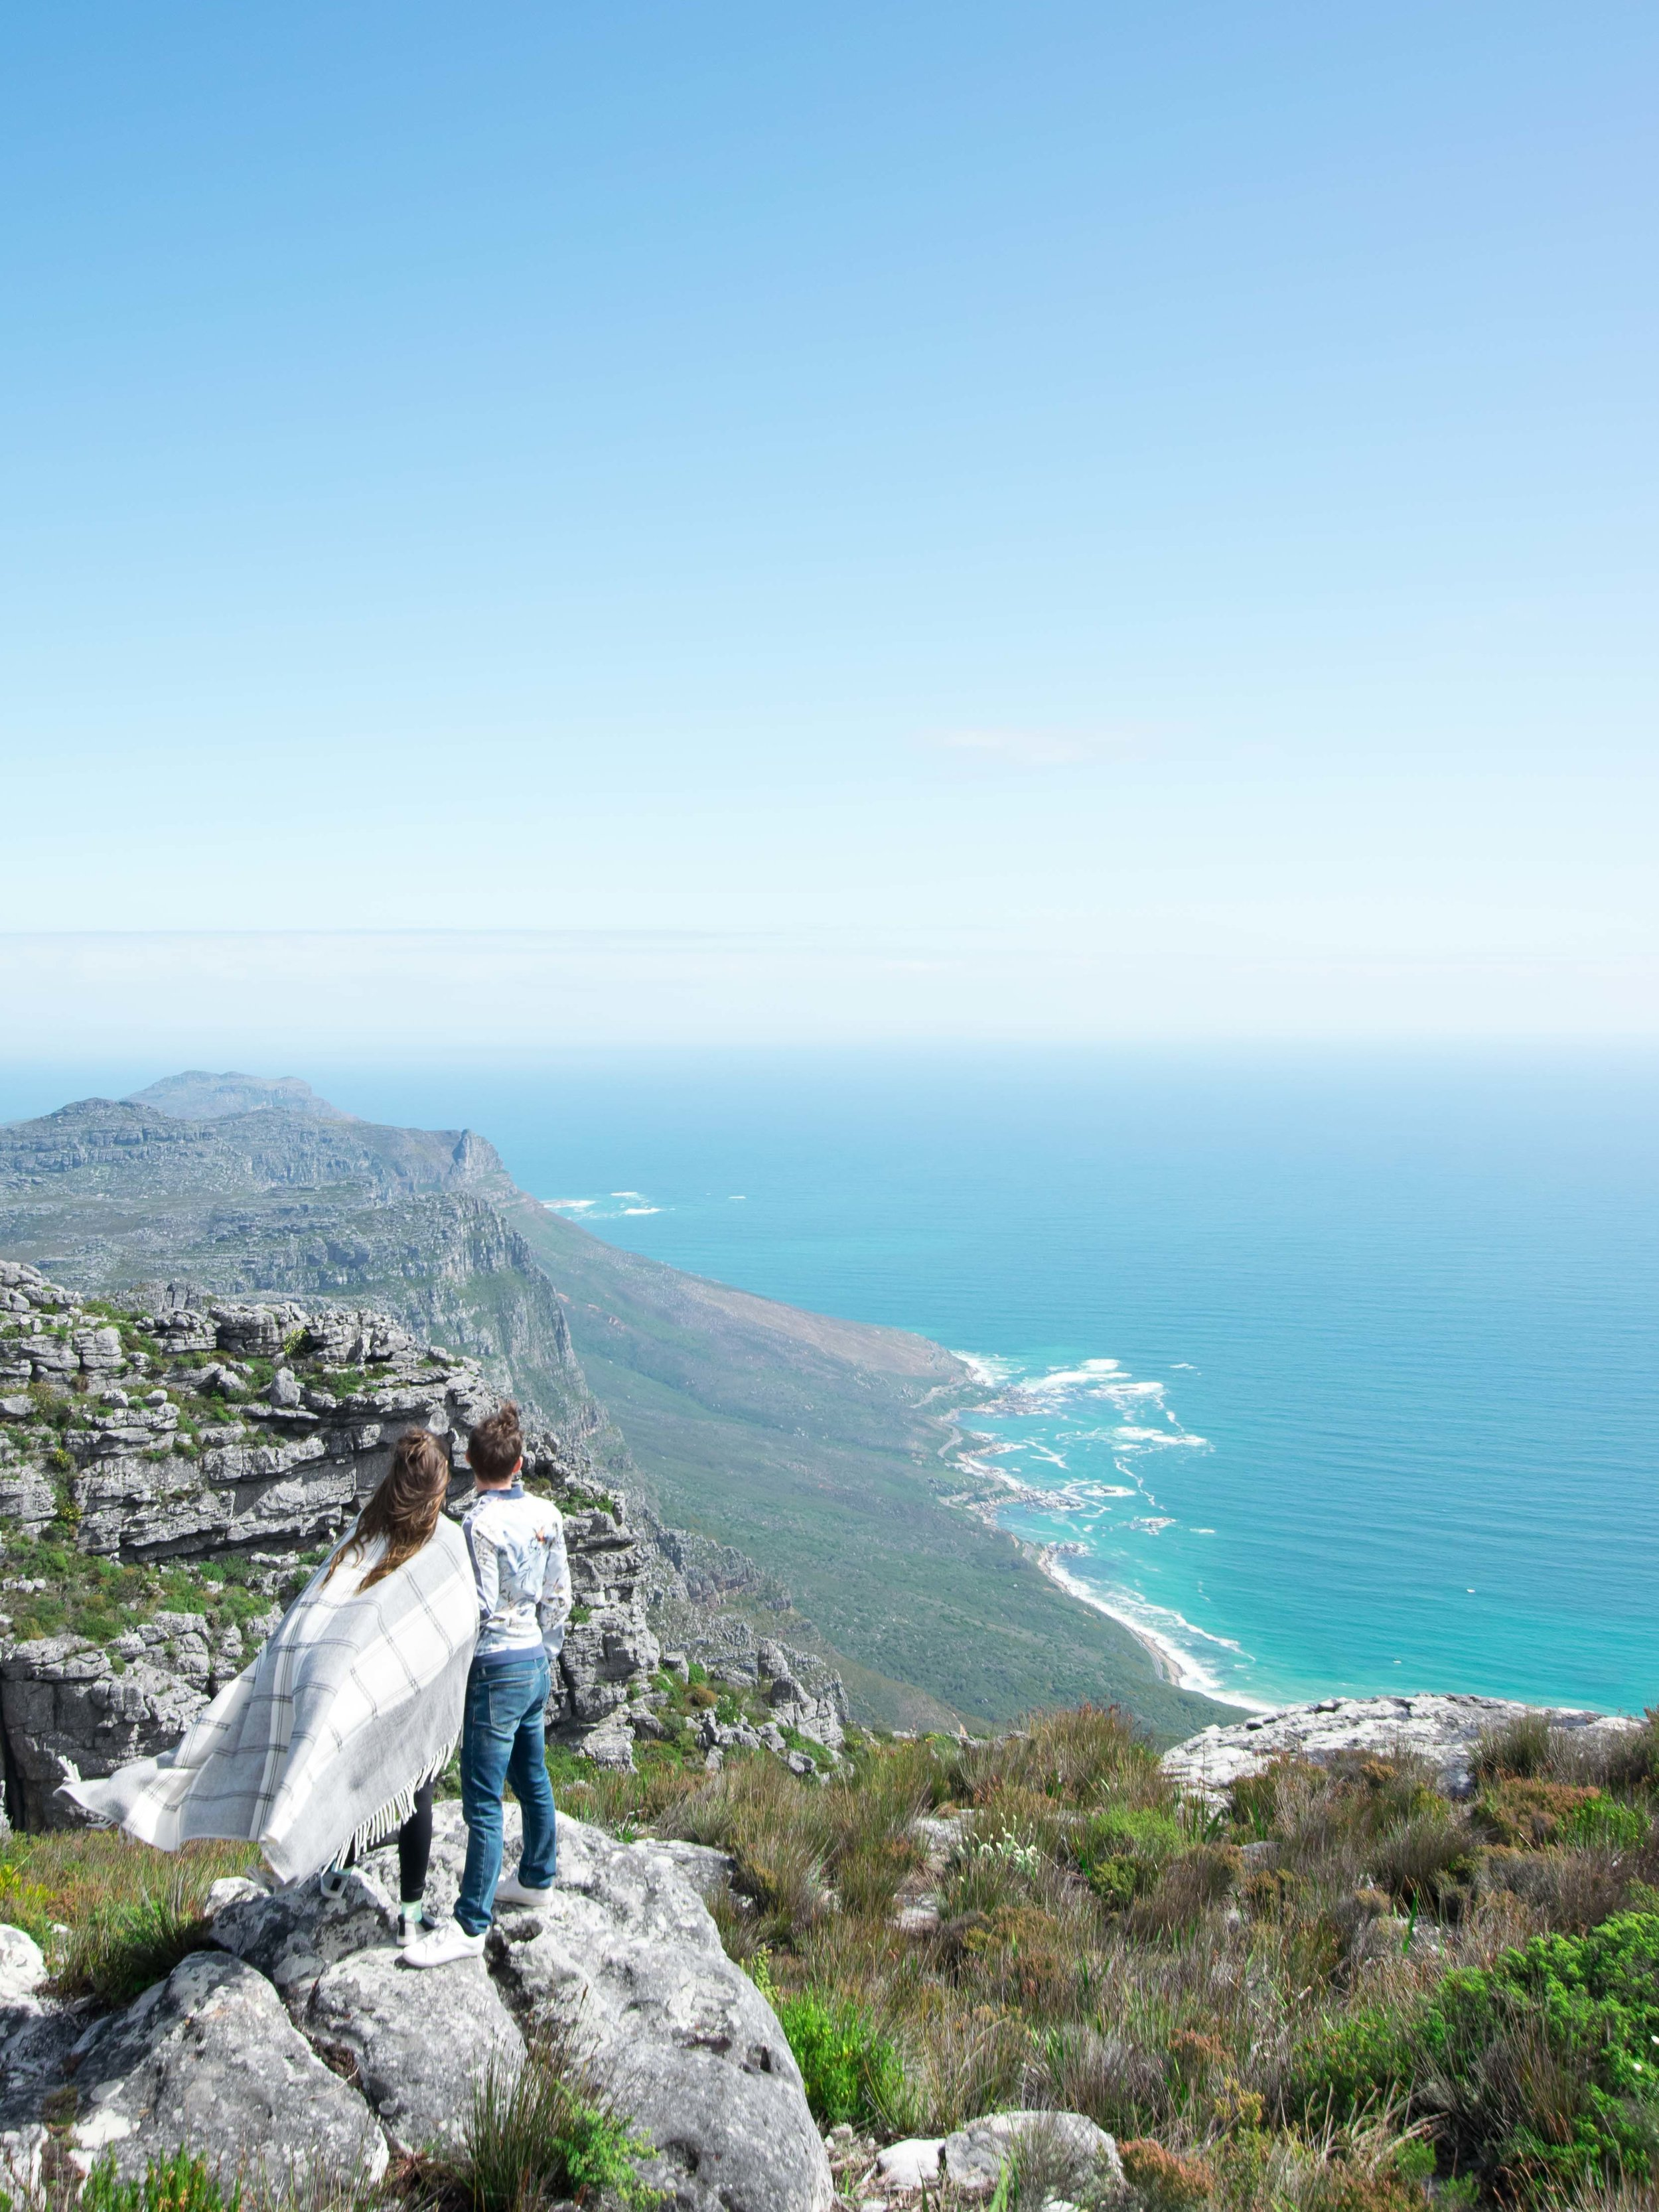 Having a romantic moment at the top of Table Mountain